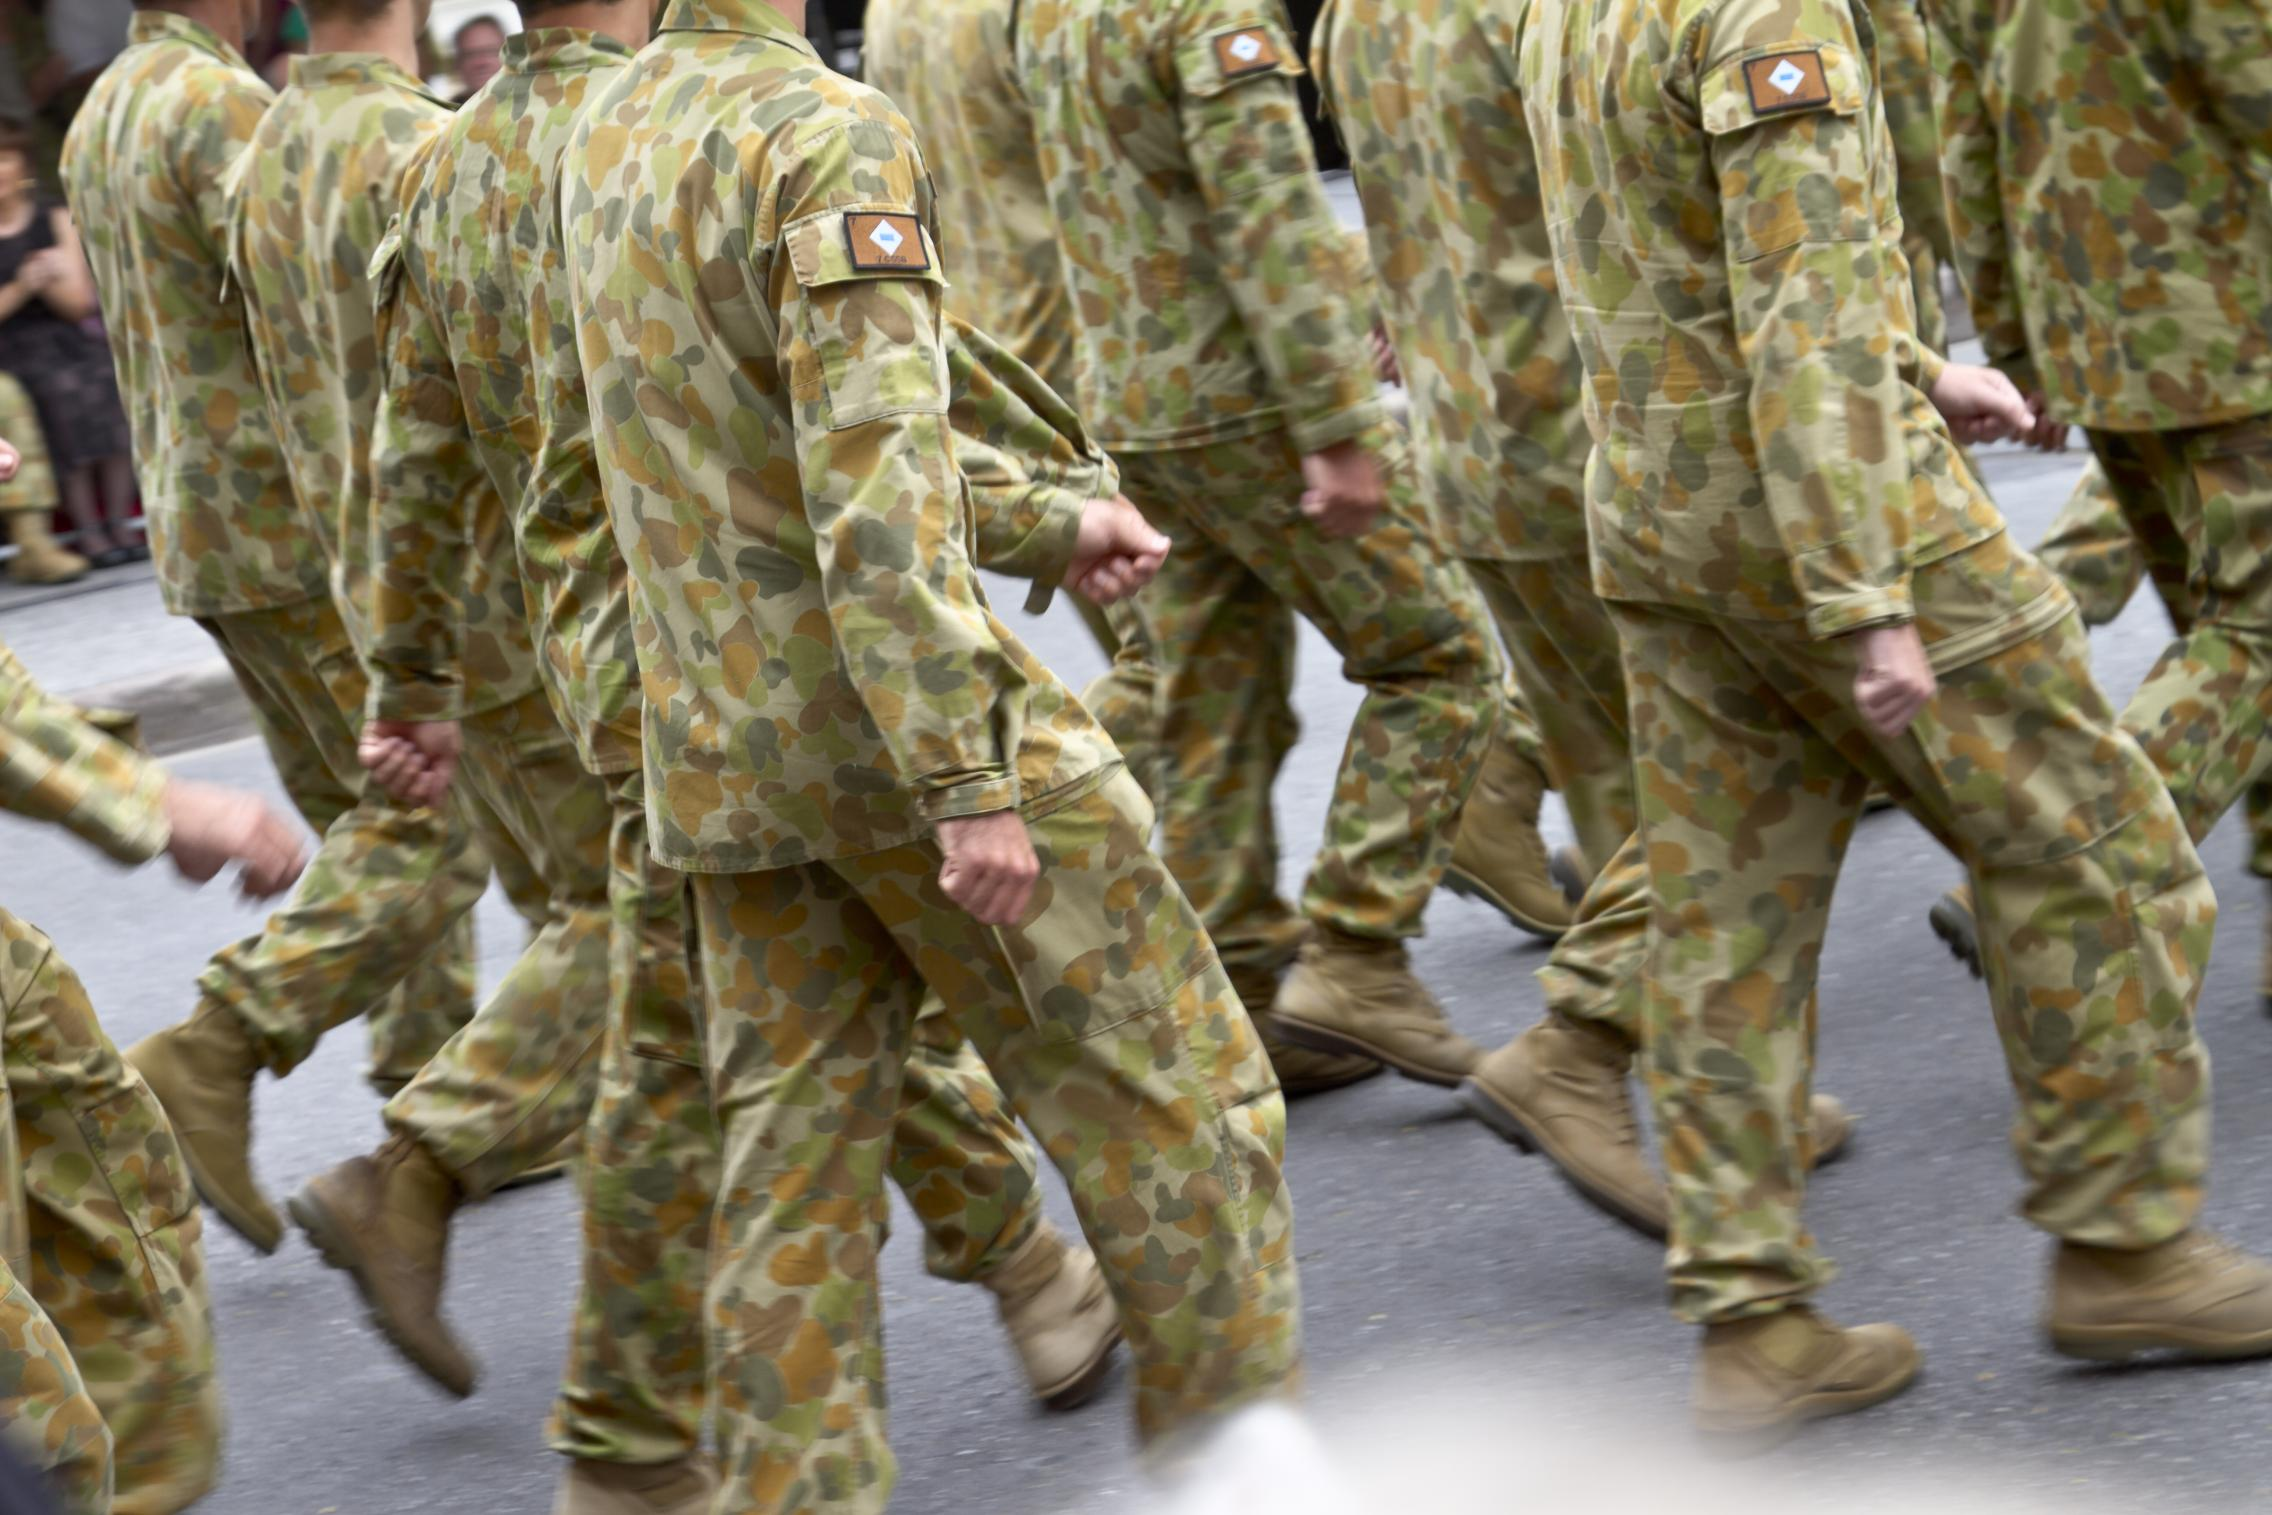 5,800 defence veterans homeless in Australia – that's more than we thought